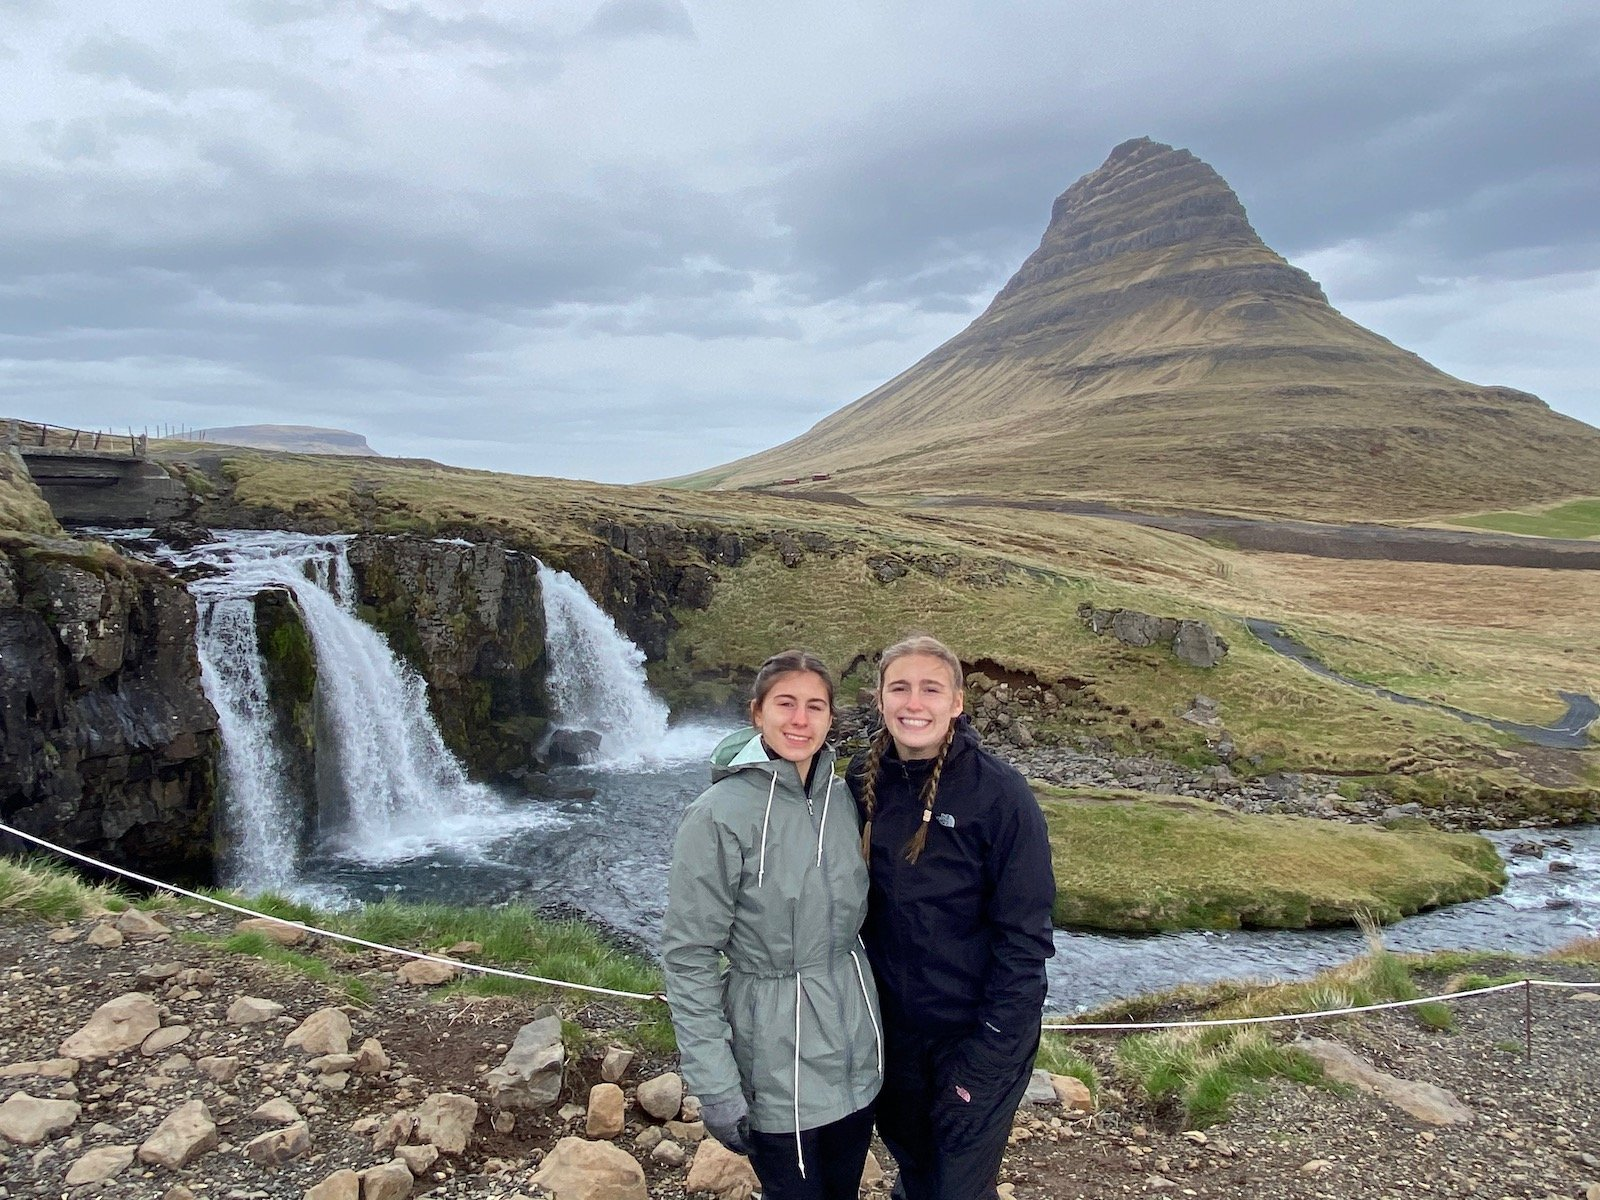 Sisters posing at the Falls by Kirkjufell Mountain (from Game of Thrones) on the Snæfellsnes Peninsula.